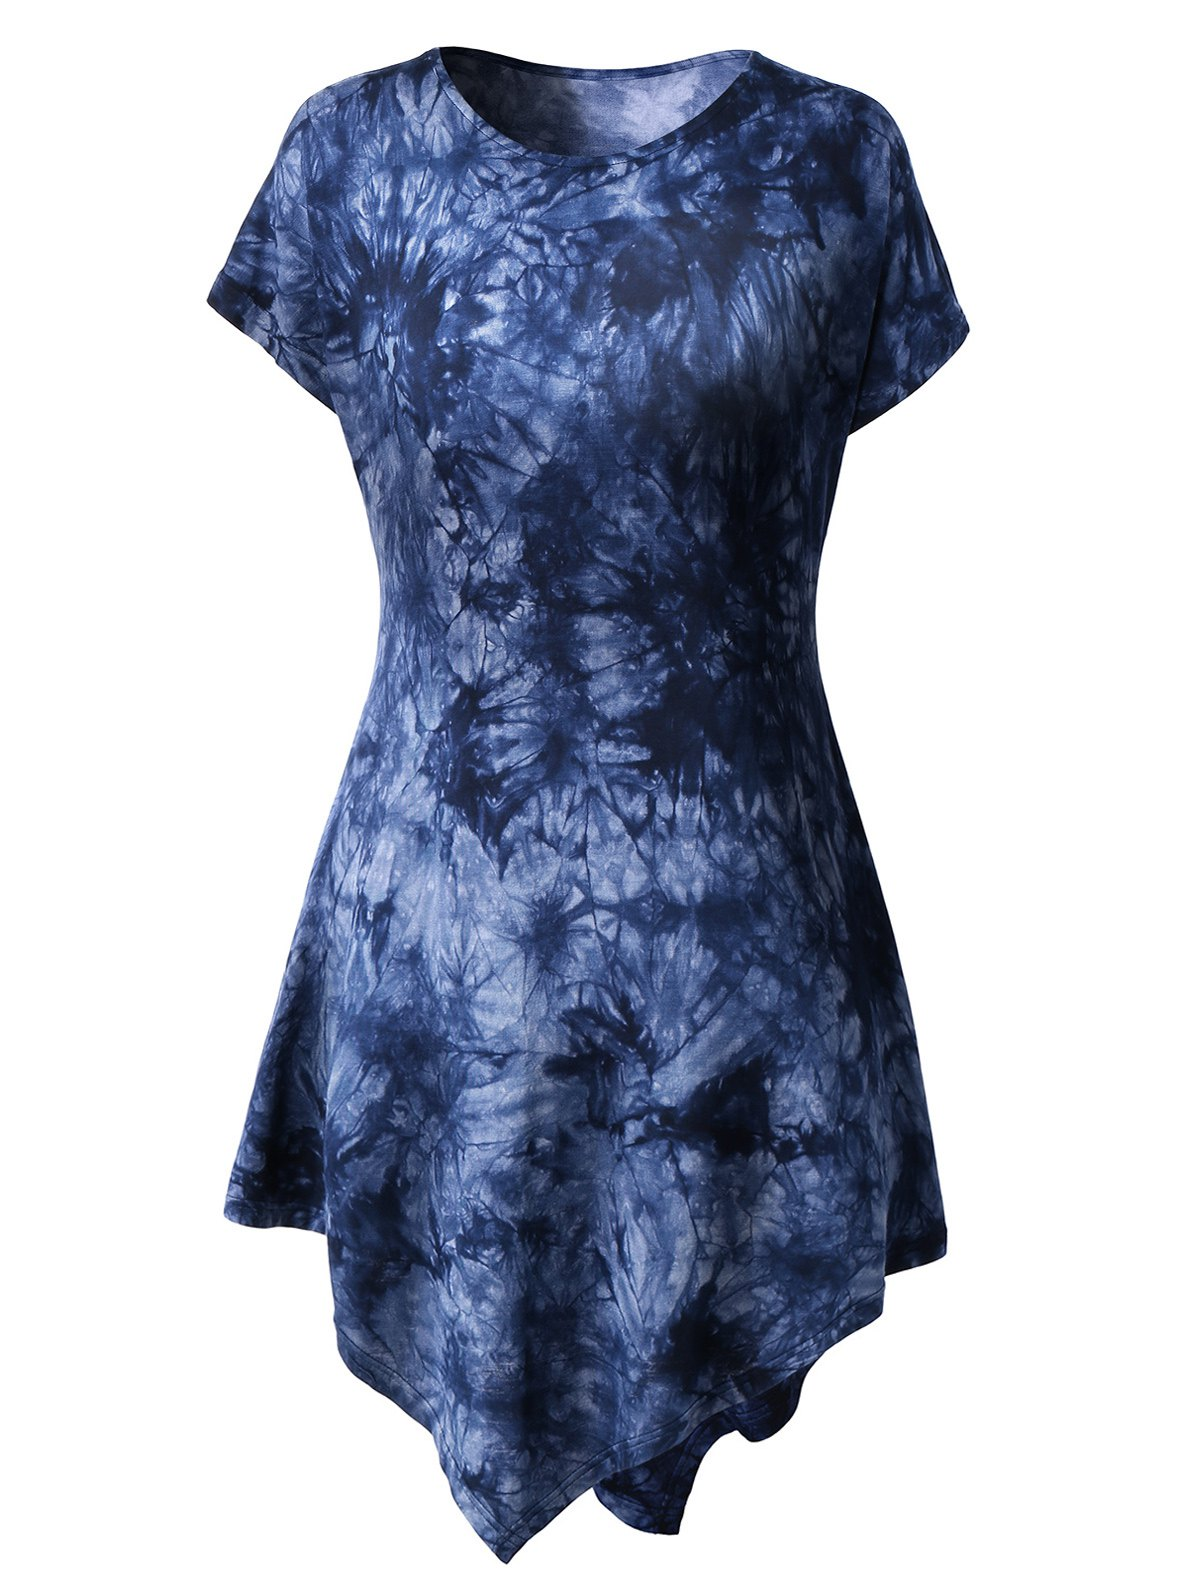 Round Neck Short Sleeve Tie-Dyed Handkerchief Dress